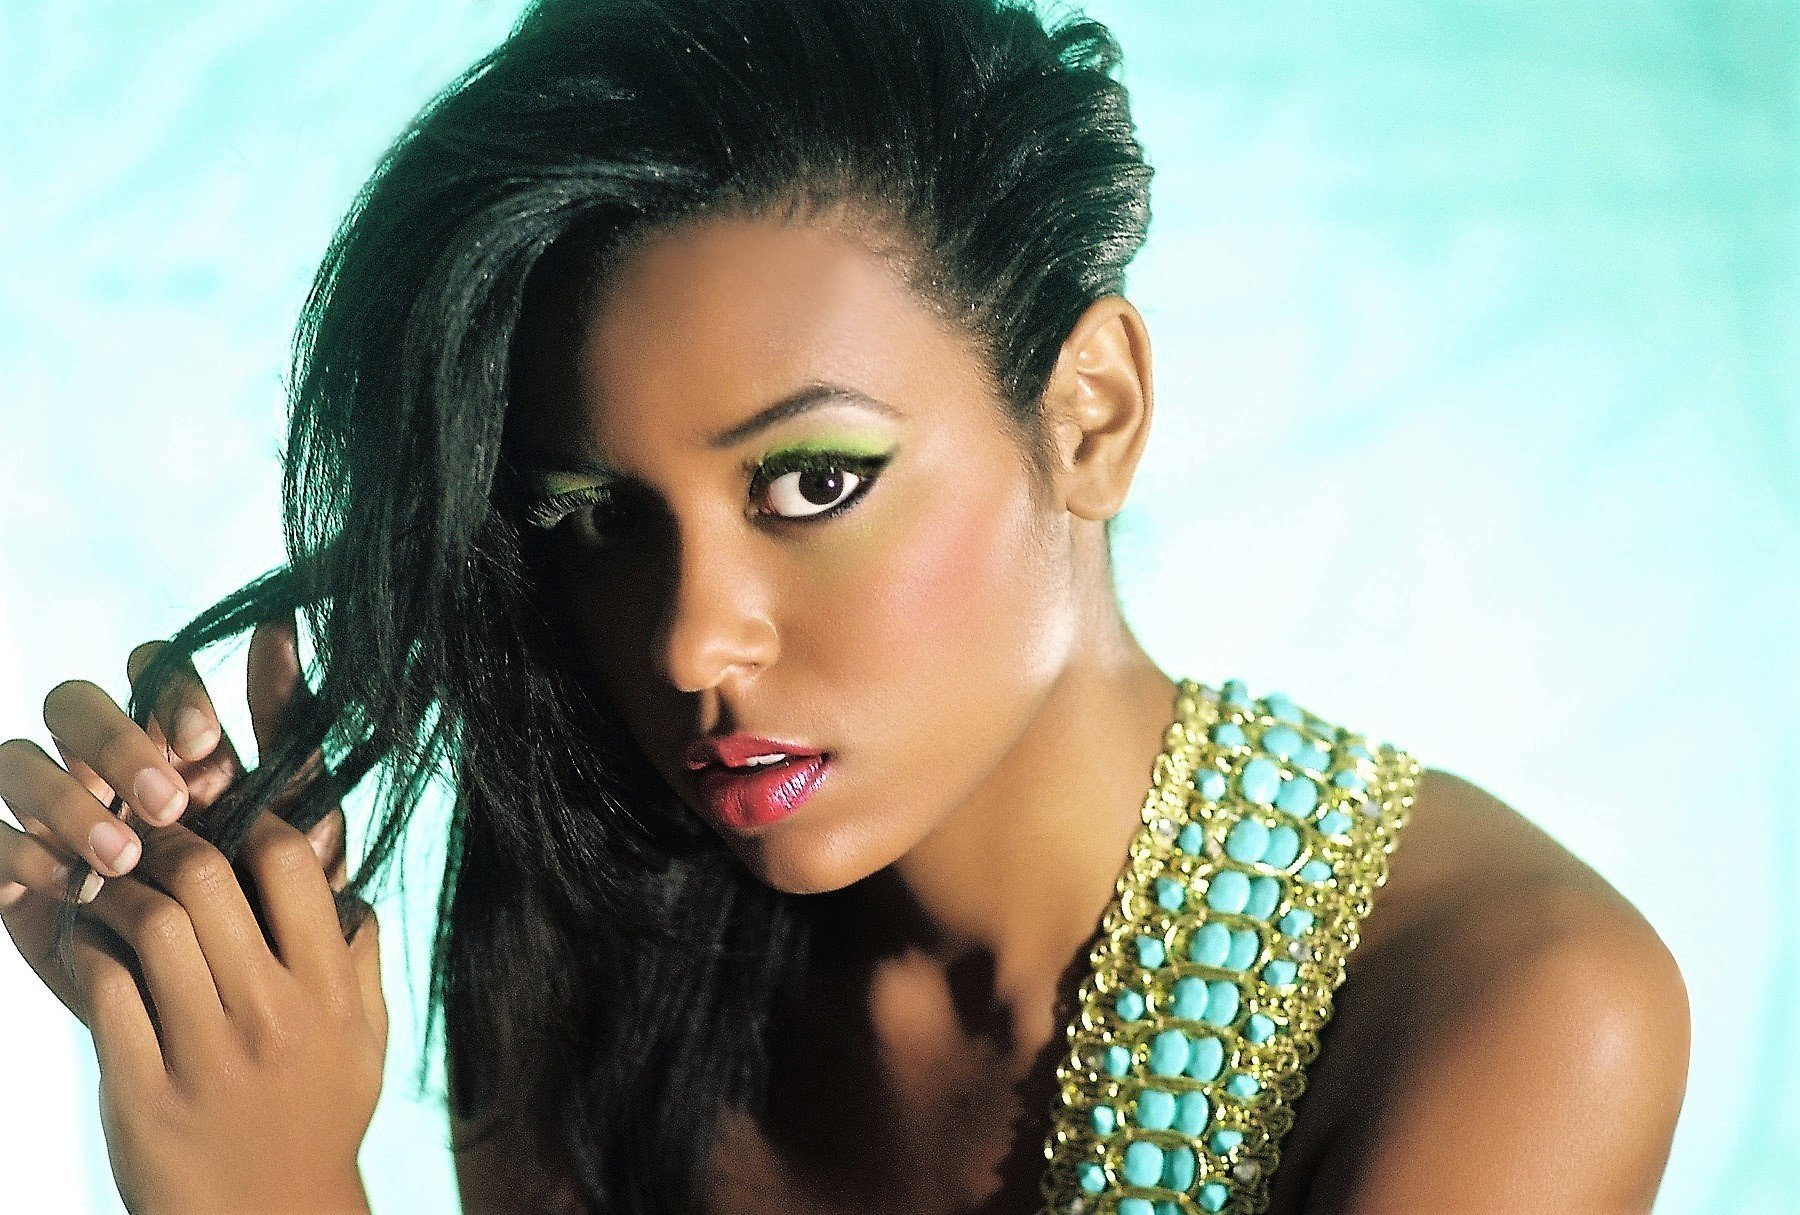 MEGAN PINCKNEY -  MISS SC-USA   She placed TOP 6 at MISS USA, and she is a former MISS SC TEEN USA.